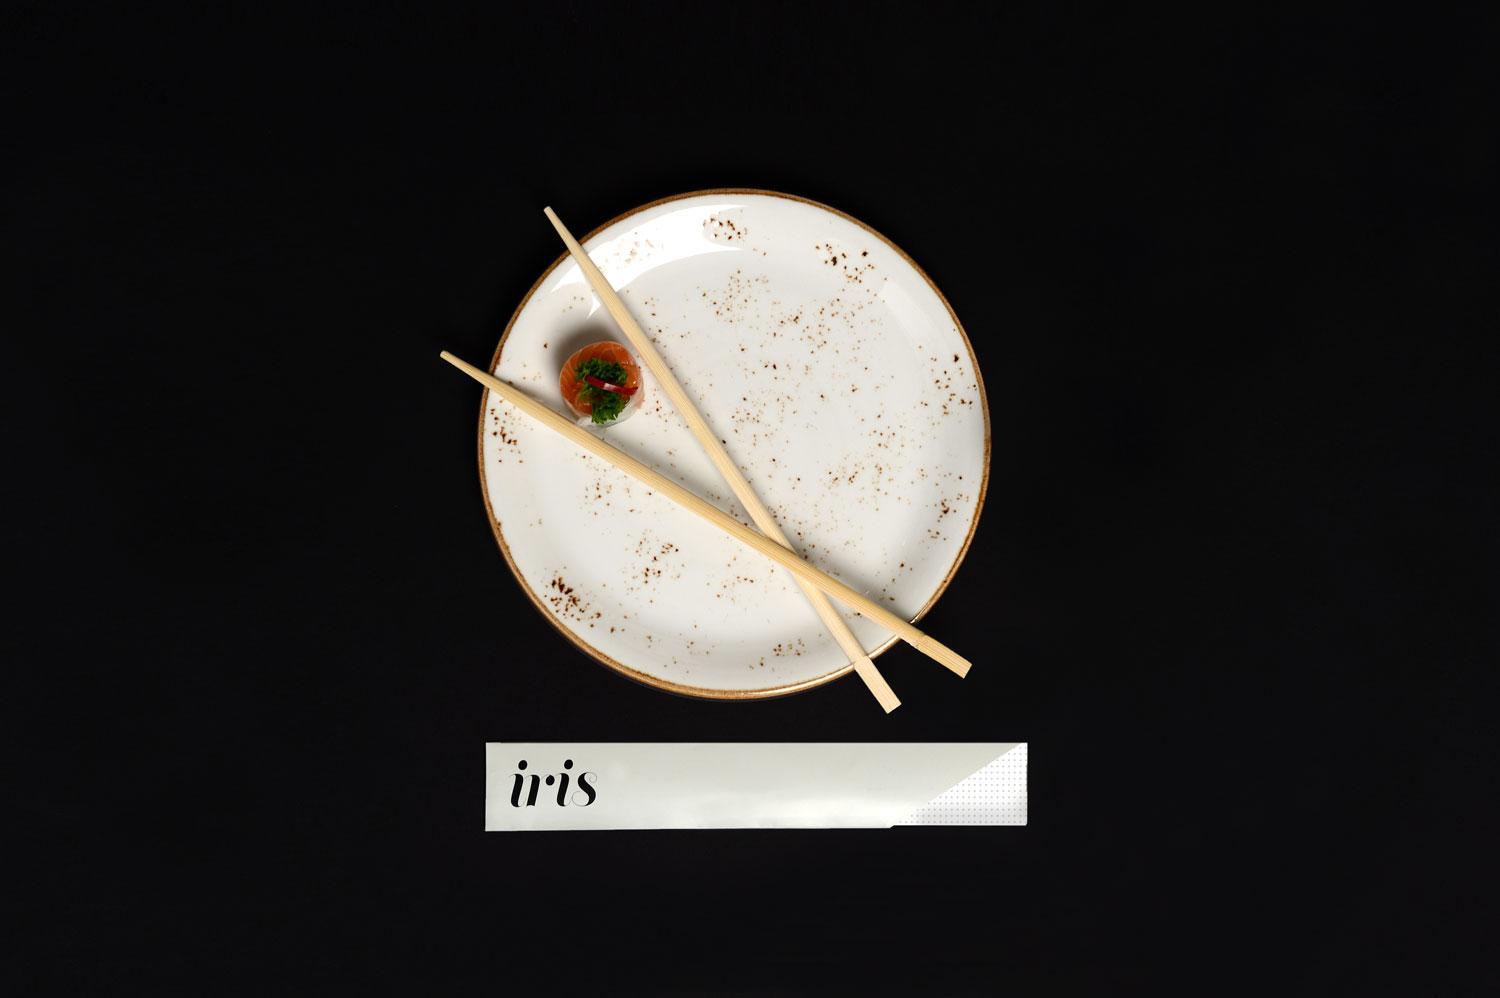 iris beirut chopsticks